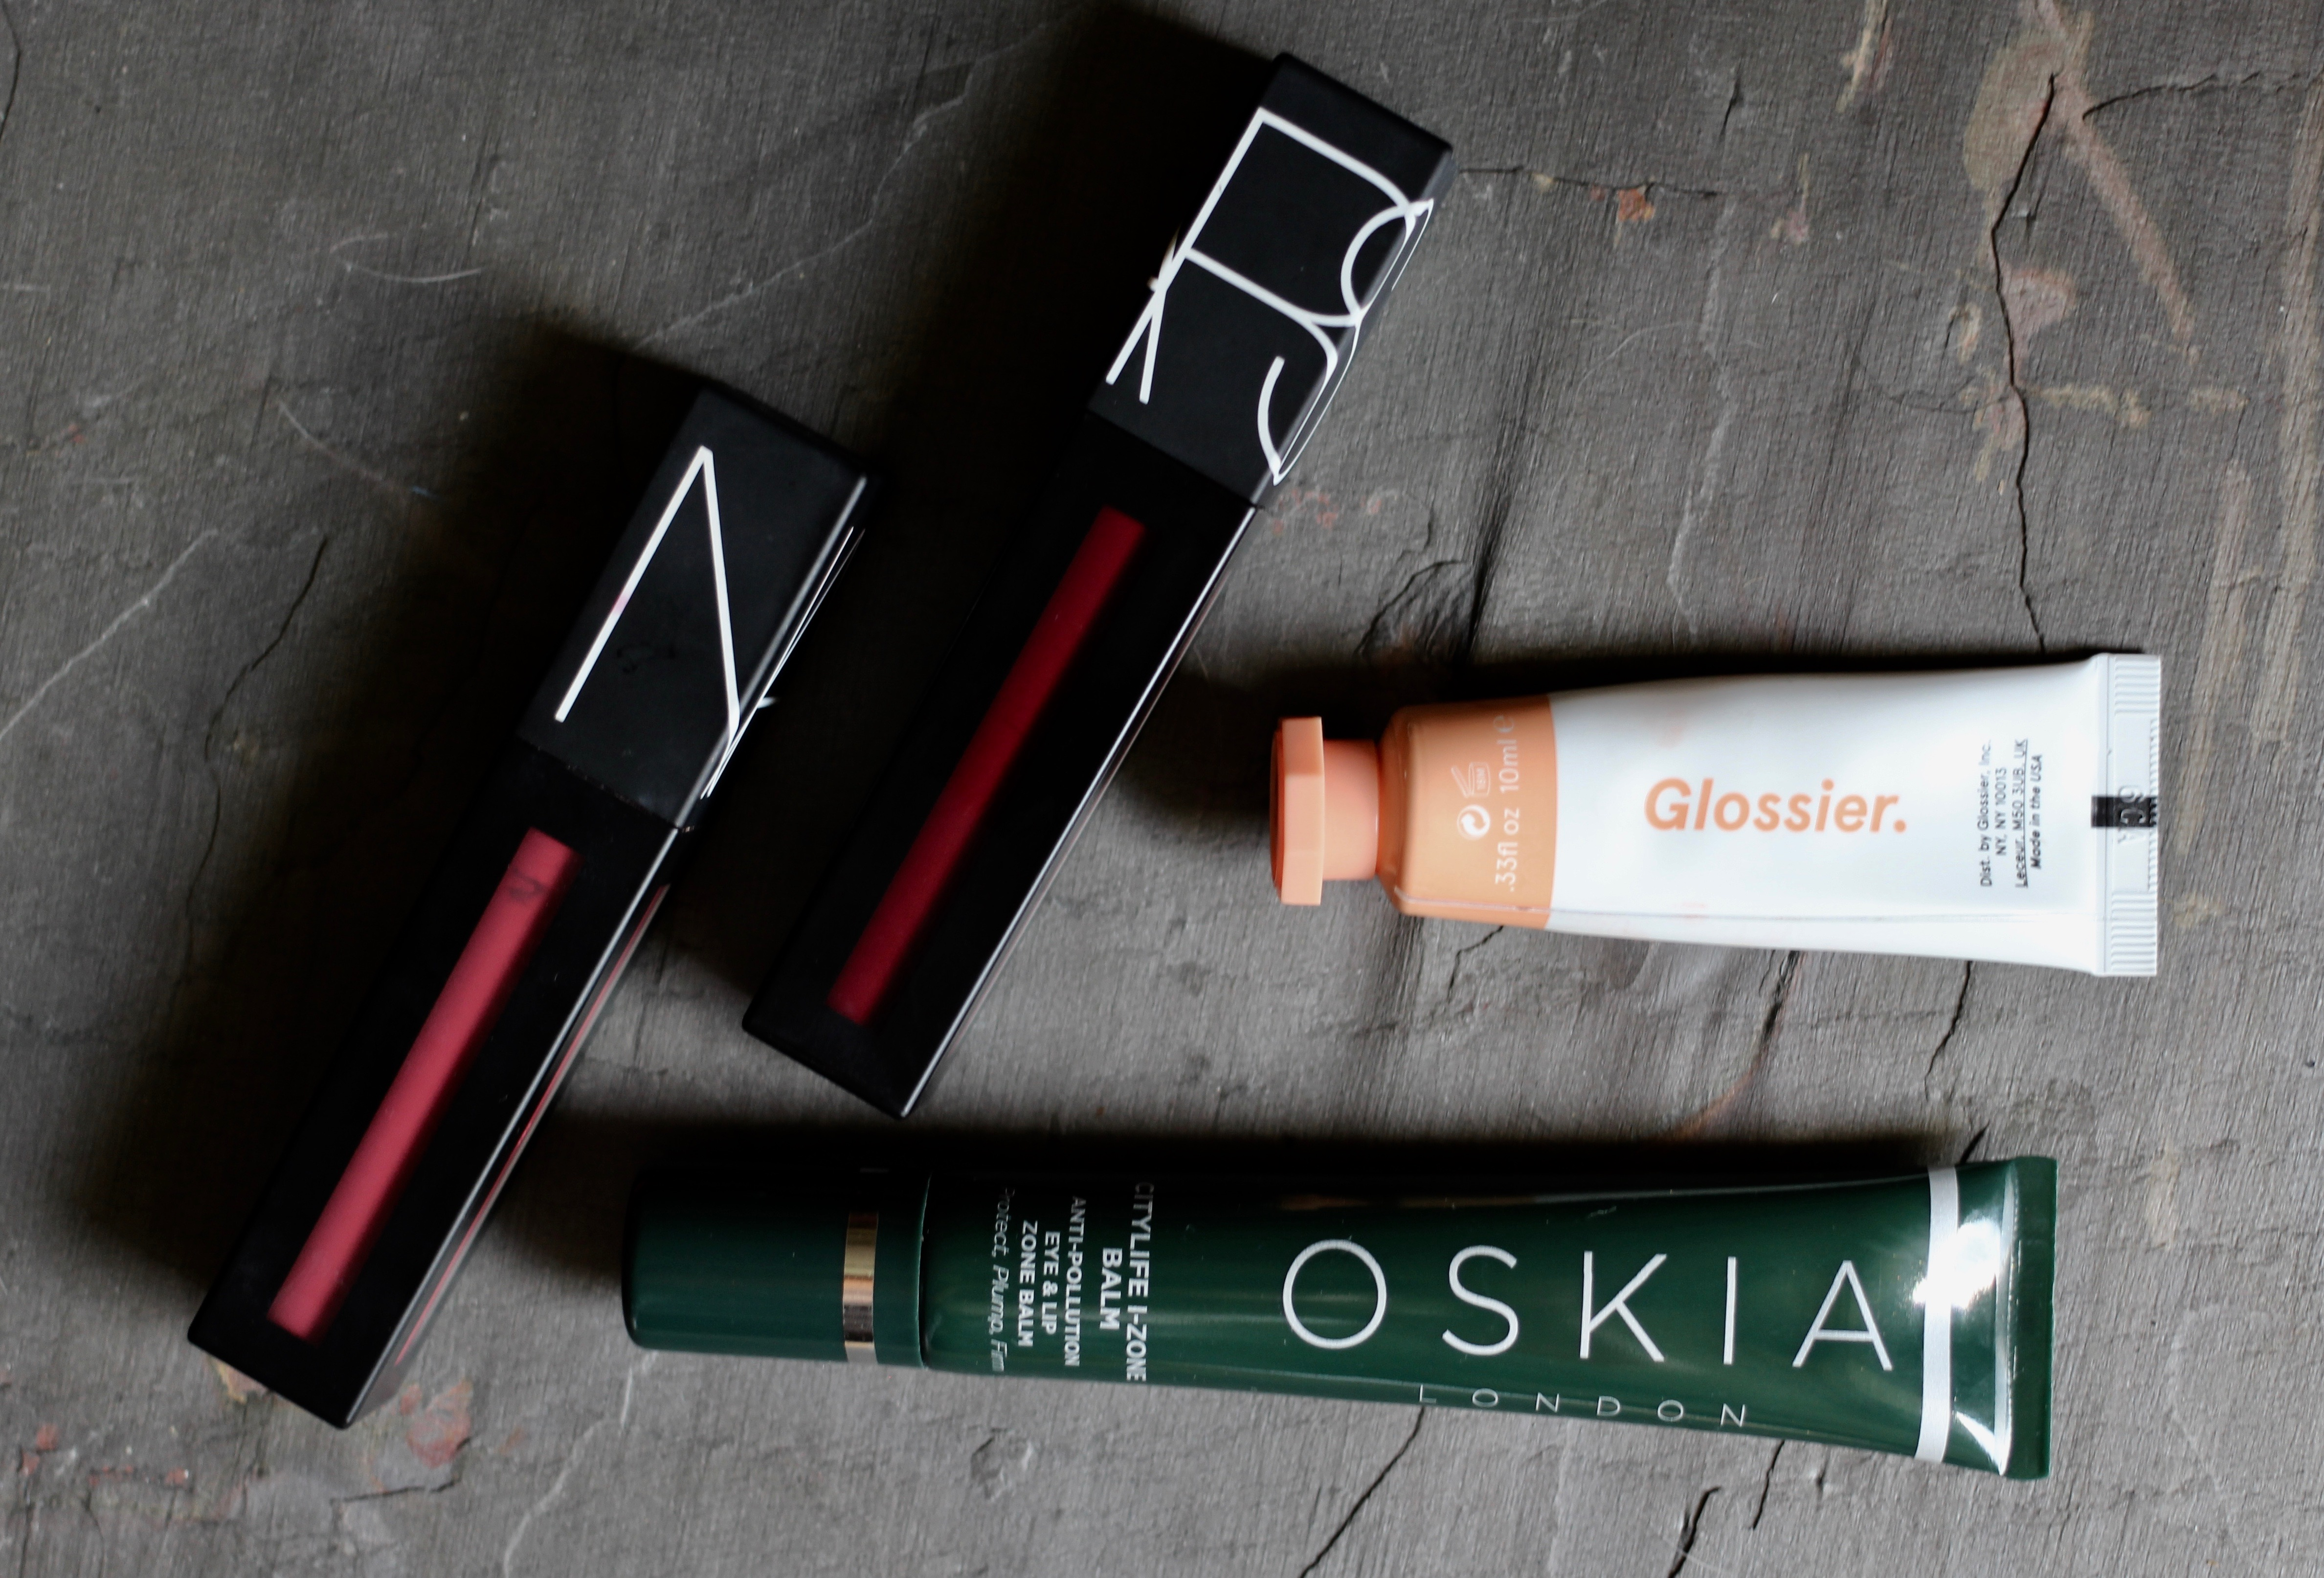 Glossier Uk ad Oskia and Nars